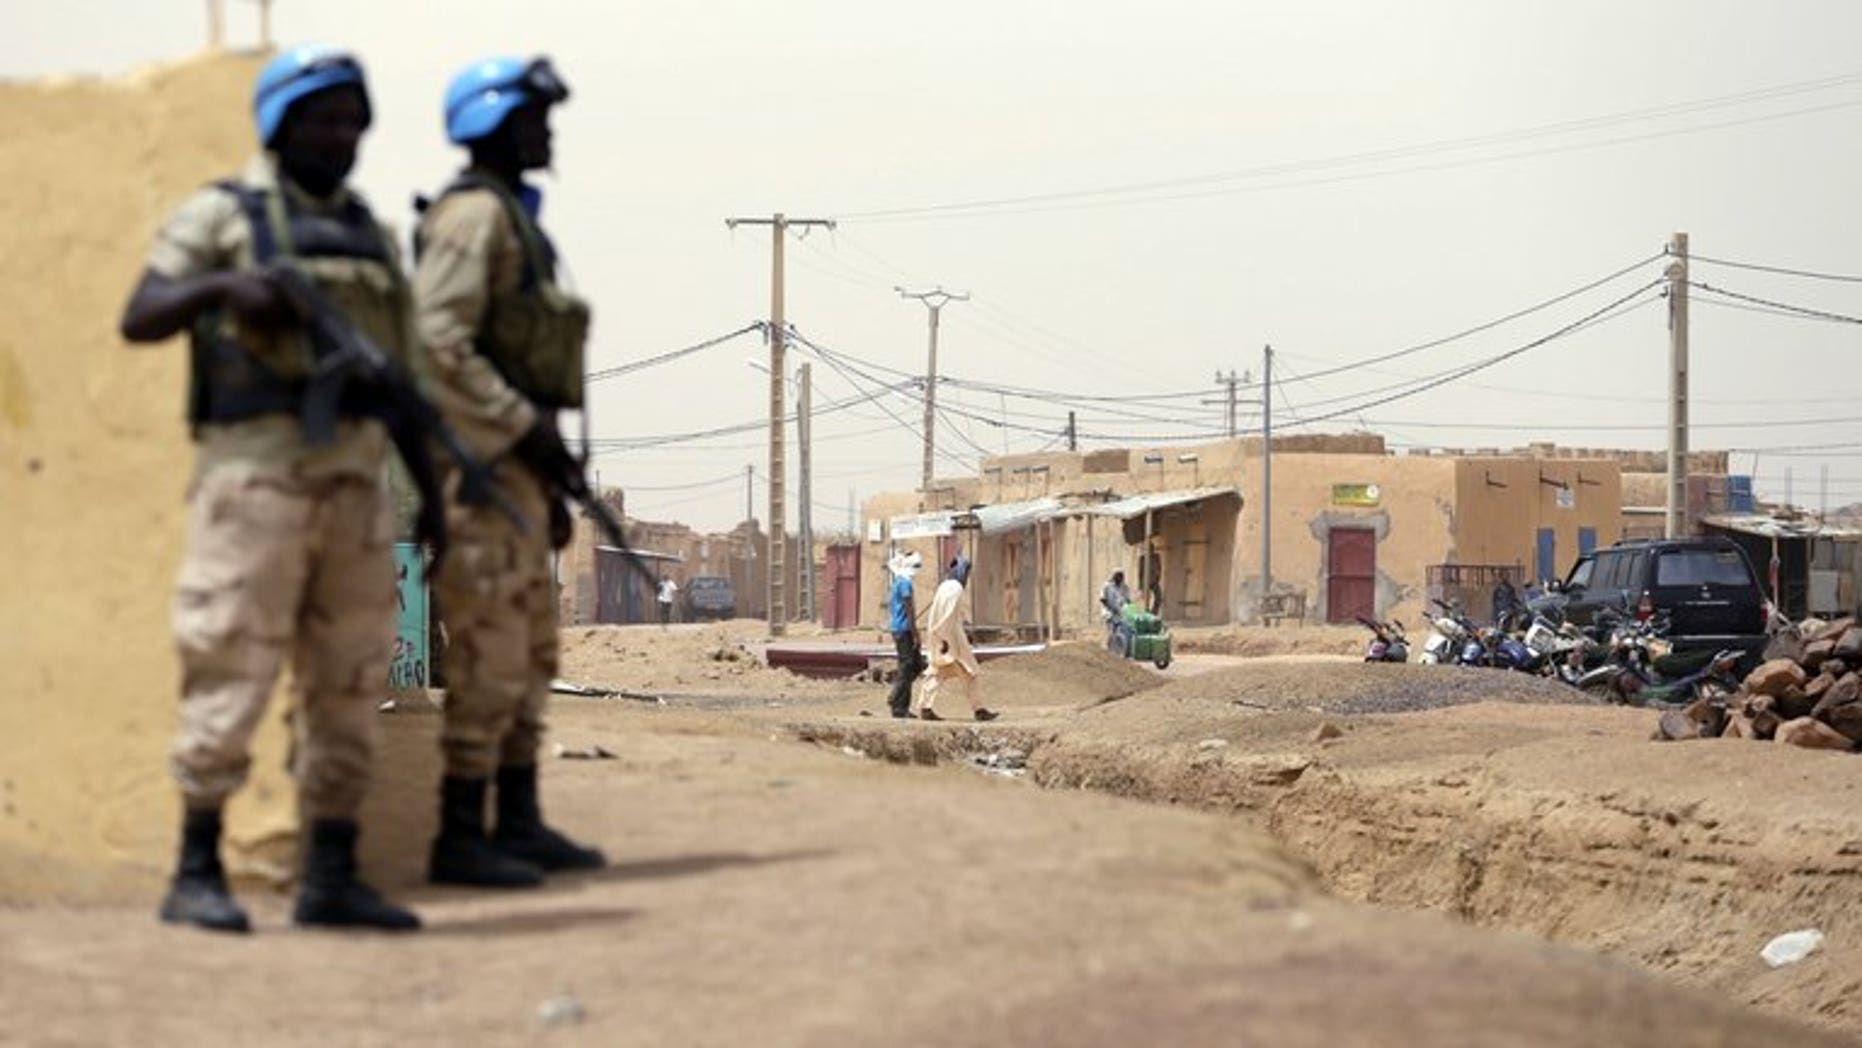 United Nations soldiers patrol on July 27, 2013 in the northern Malian city of Kidal.